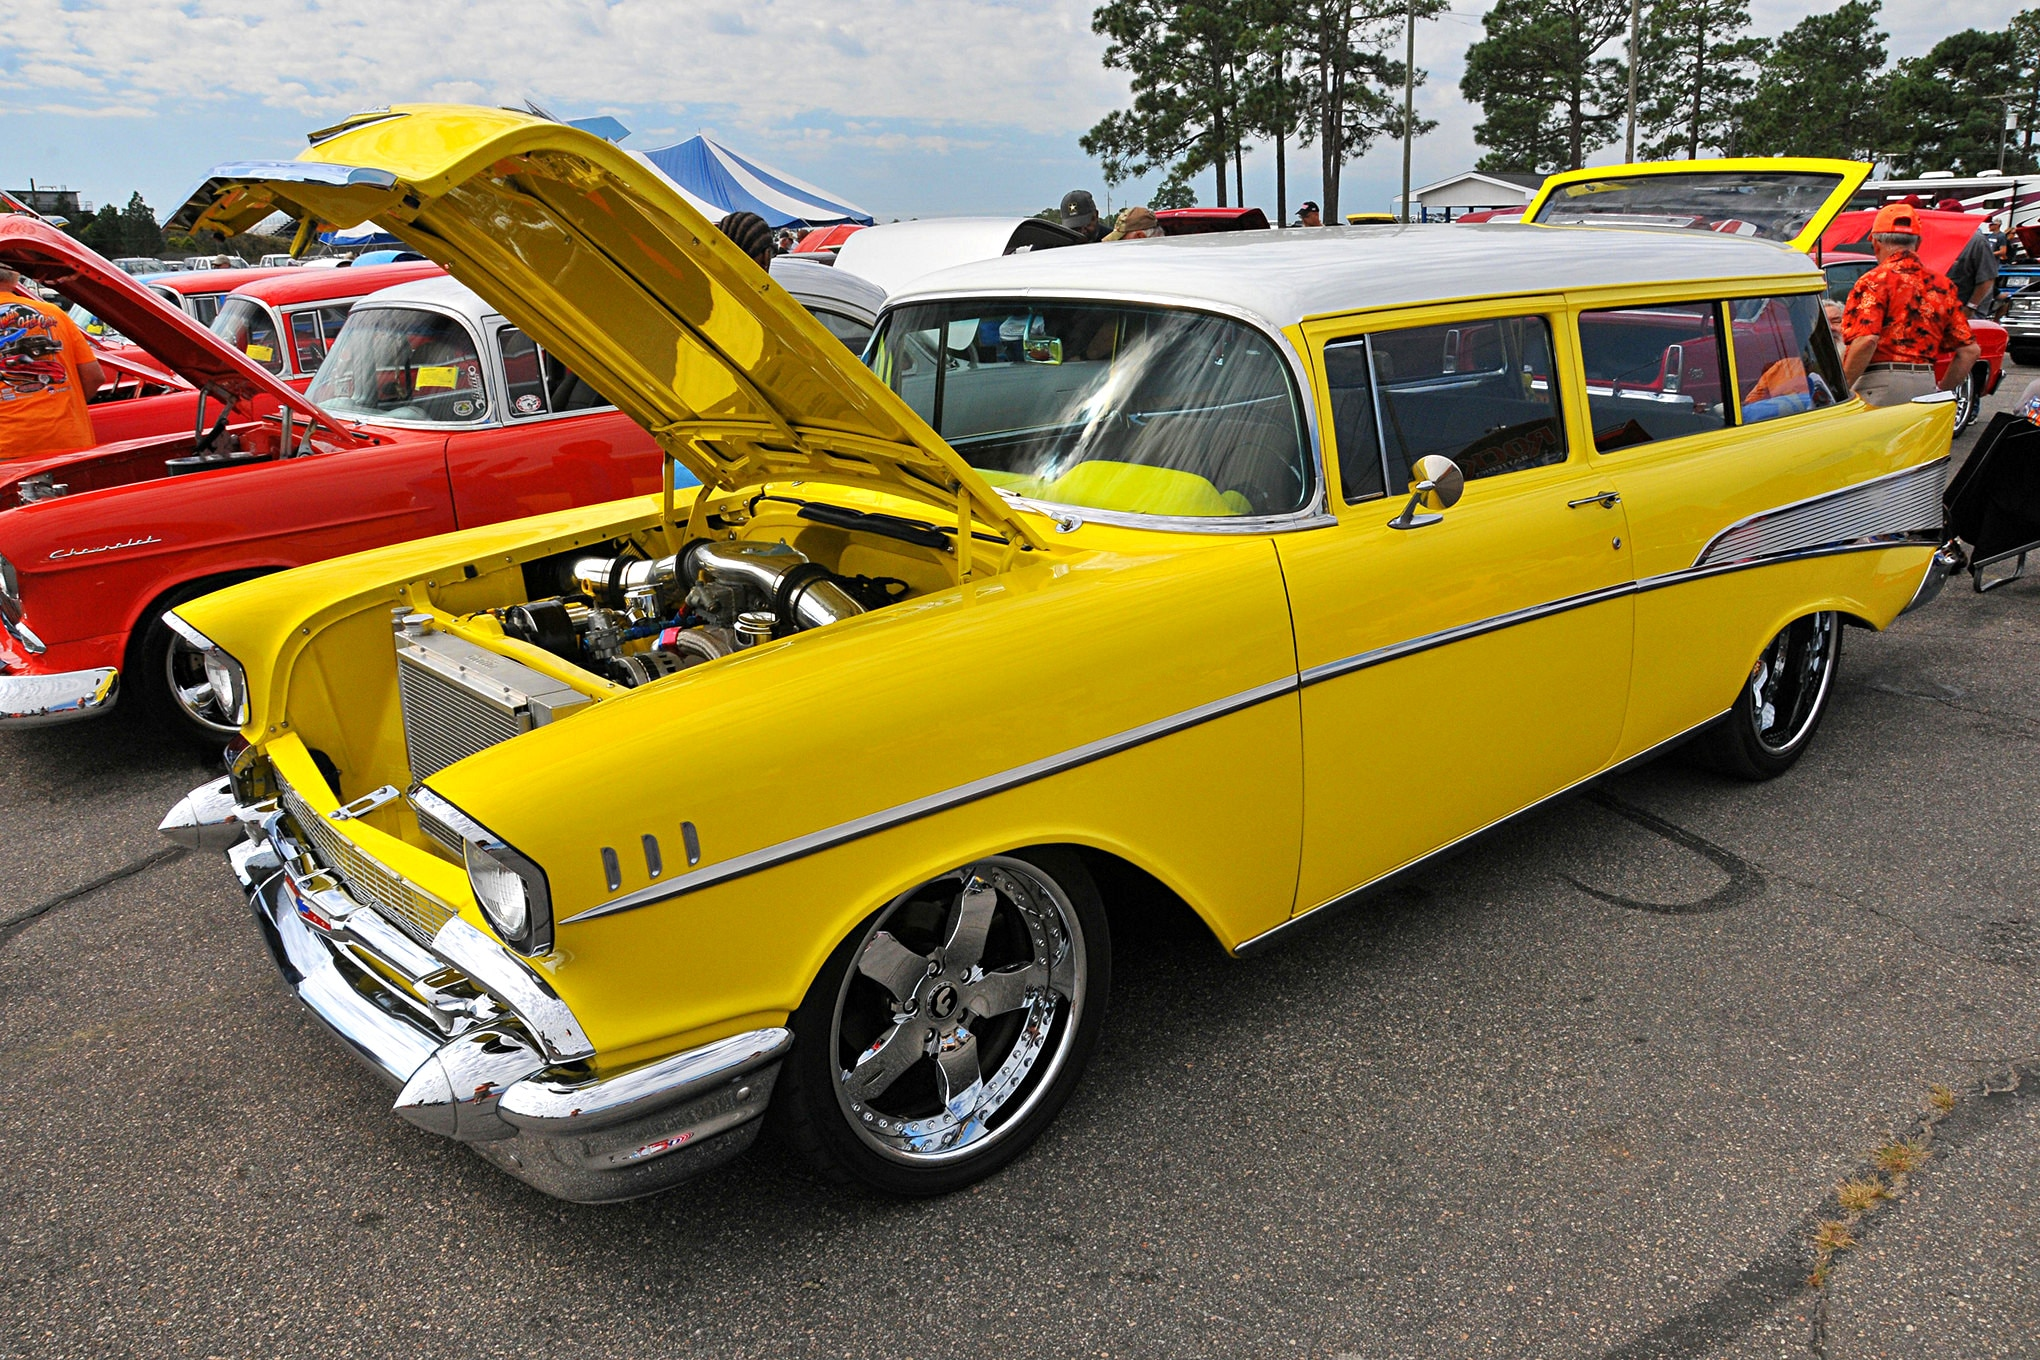 Hot Chevys Converge on Rockingham NC for the 2017 Super Chevy Show – Large Gallery!